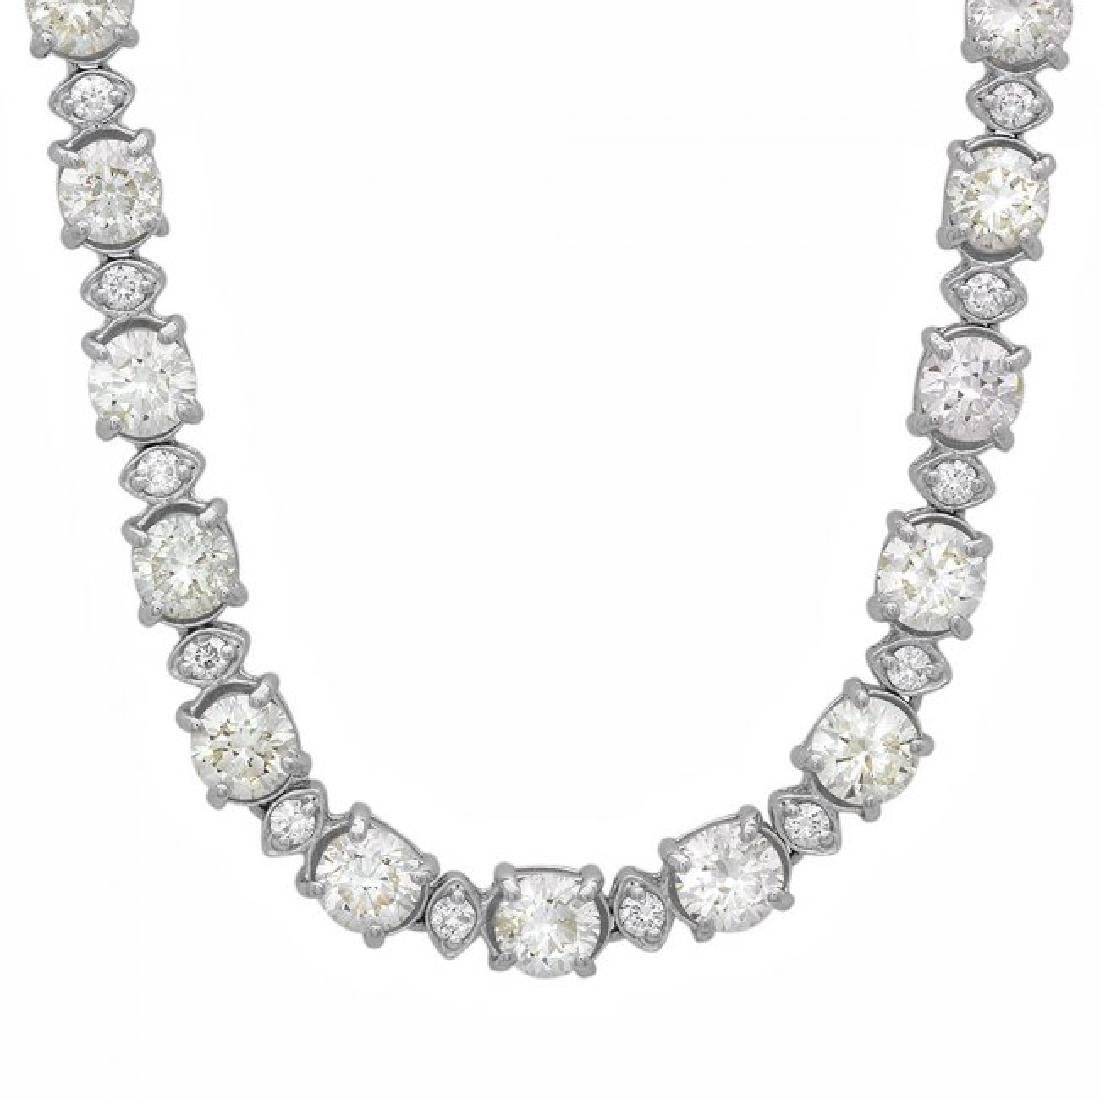 18k White Gold 17ct Diamond Necklace - 6